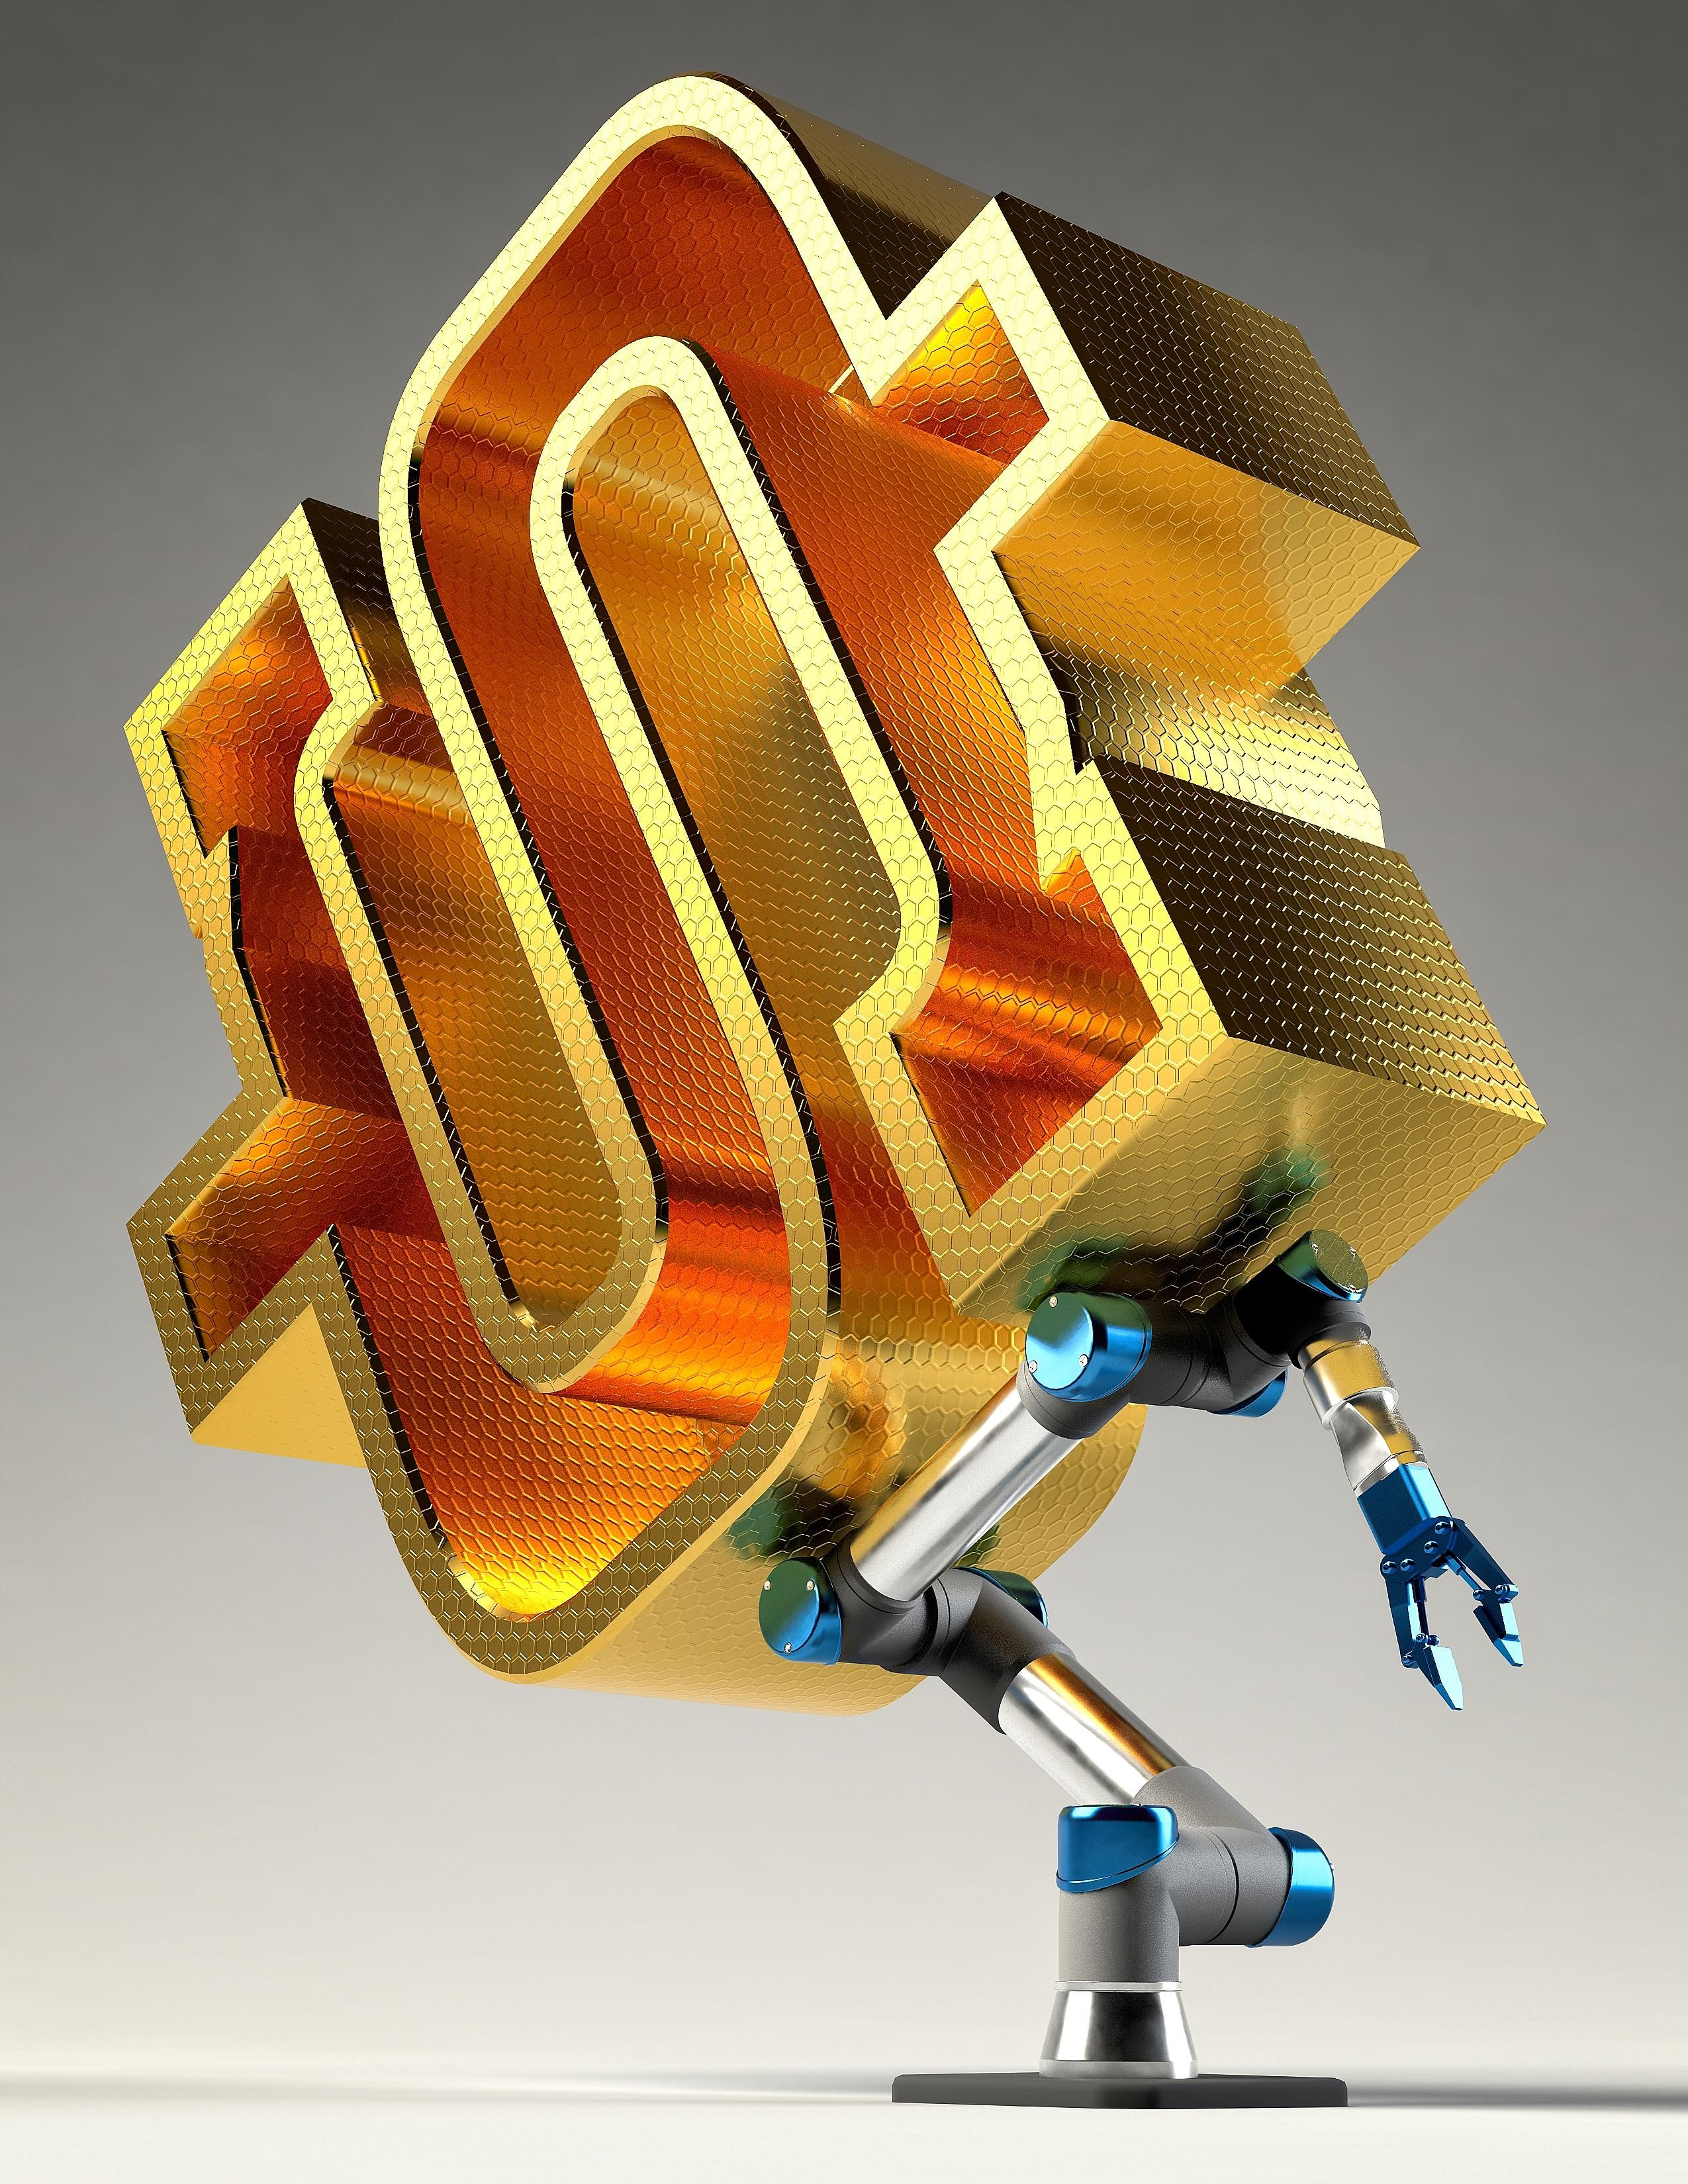 A robot arm being pushed down by a very big dollar icon